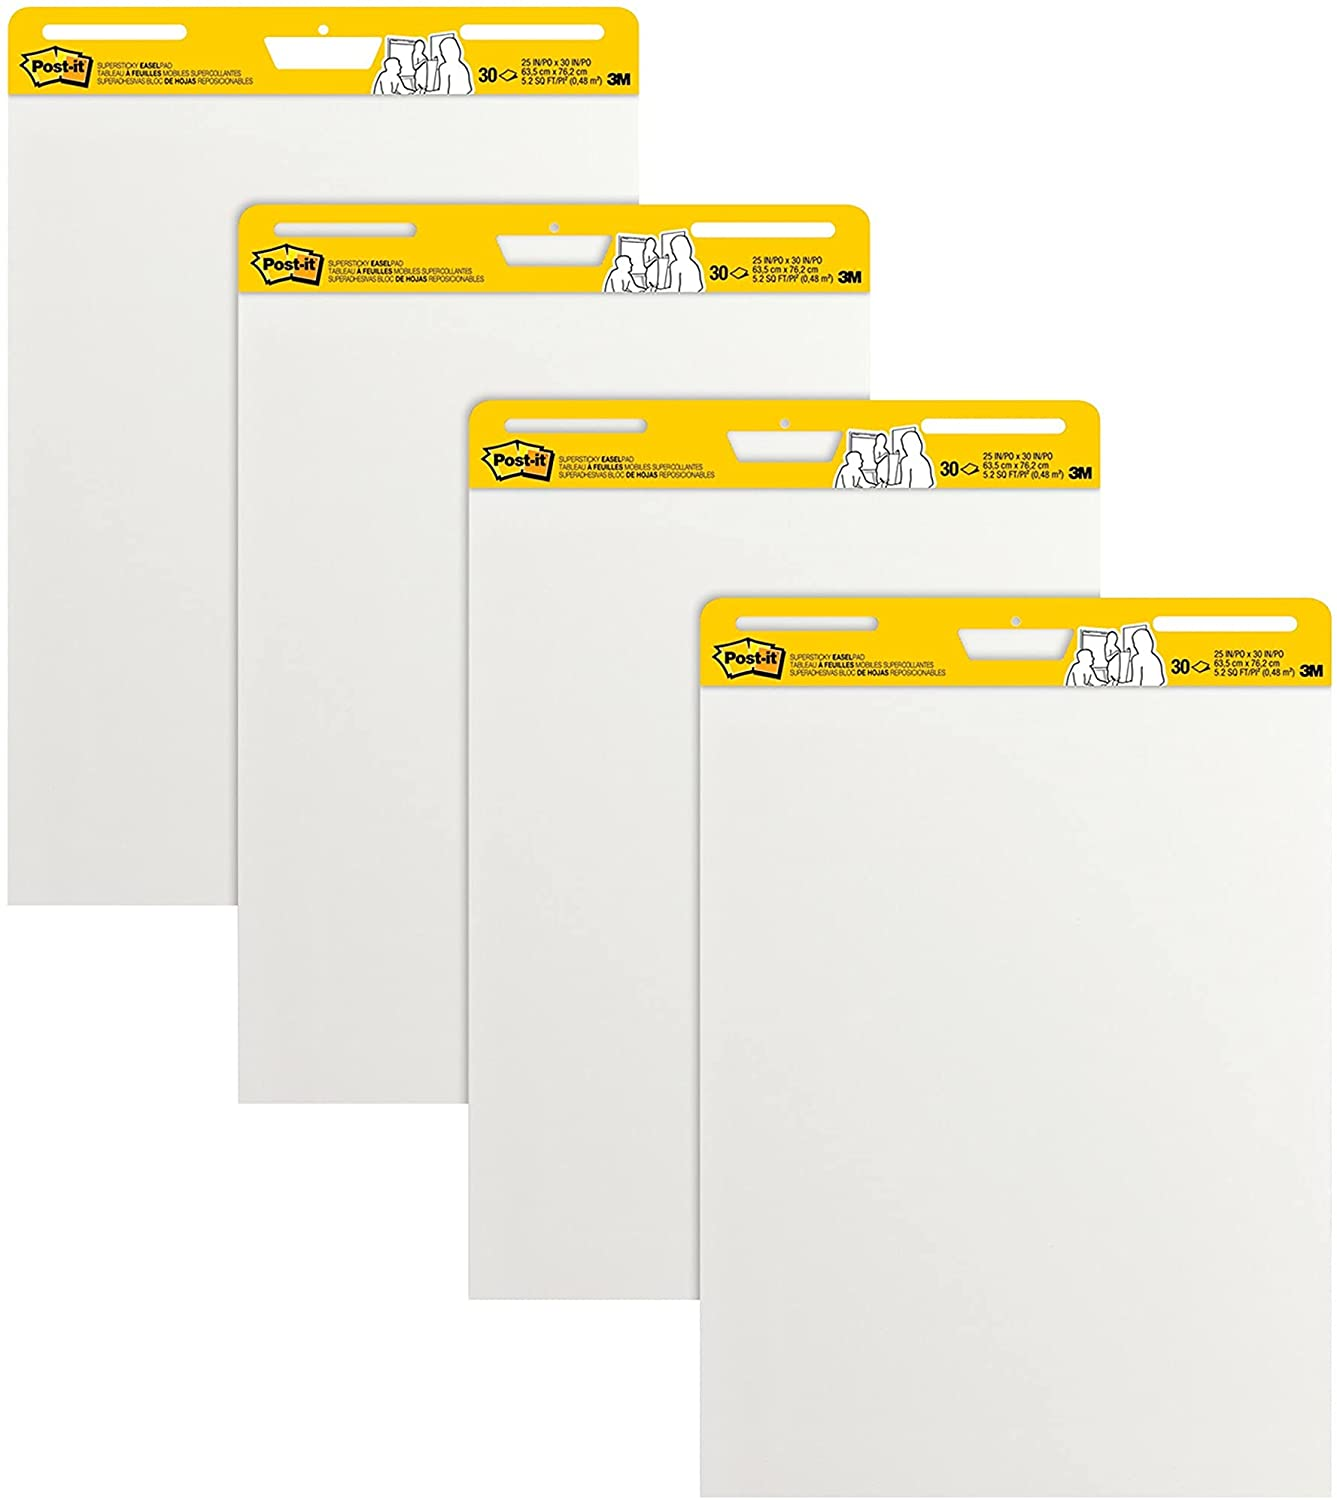 Post-it Max 80% OFF Super Sticky Easel Pad 25 x shop 30 Sheets Inches 4